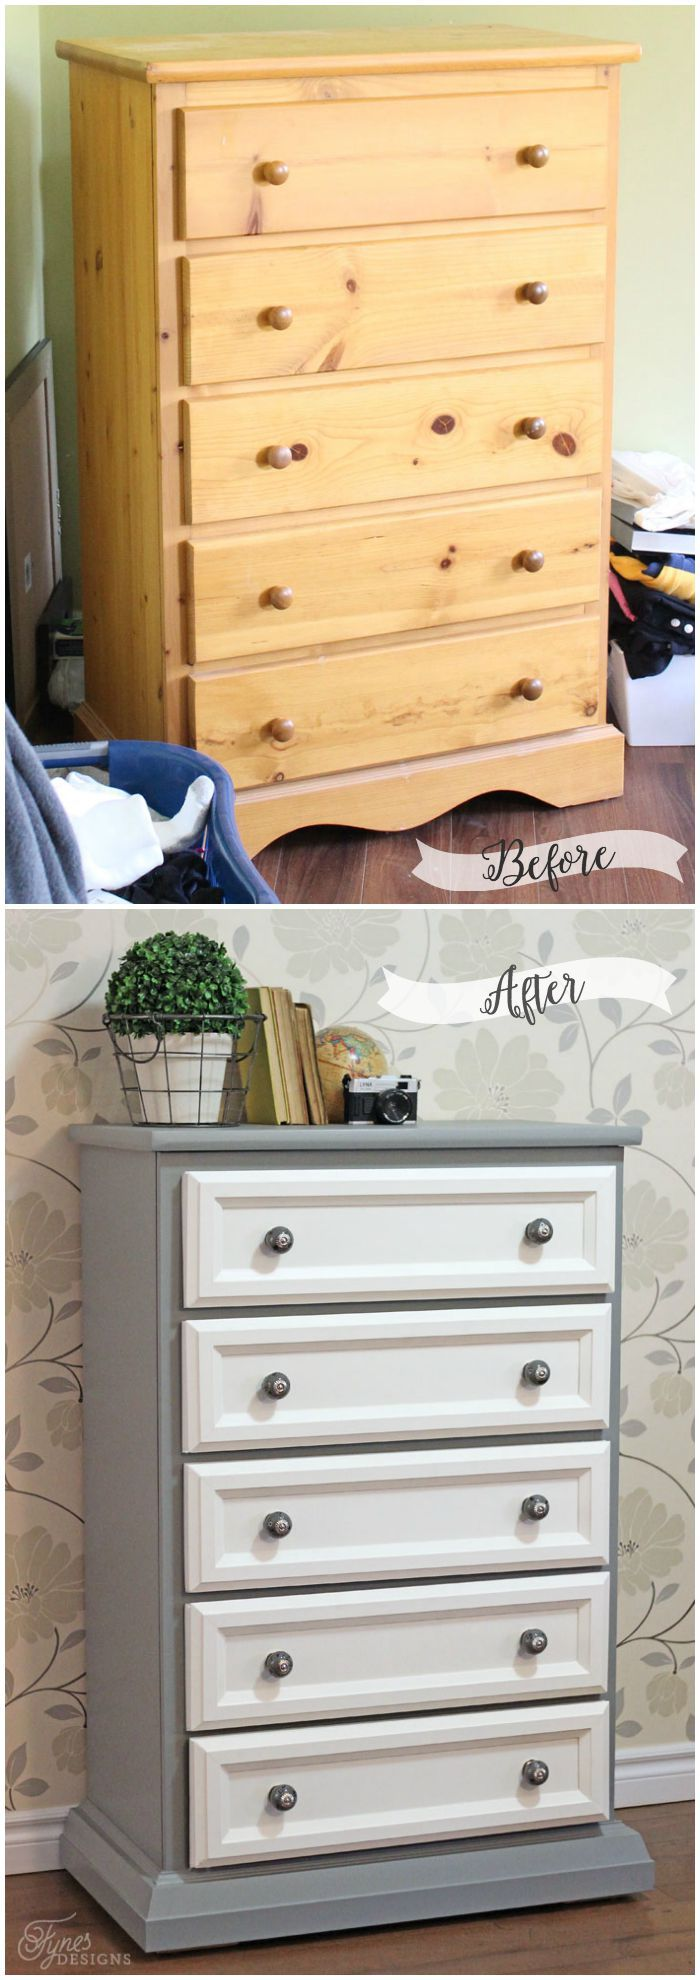 painting wood furniture whiteBest 25 Paint a dresser ideas on Pinterest  Repainting furniture